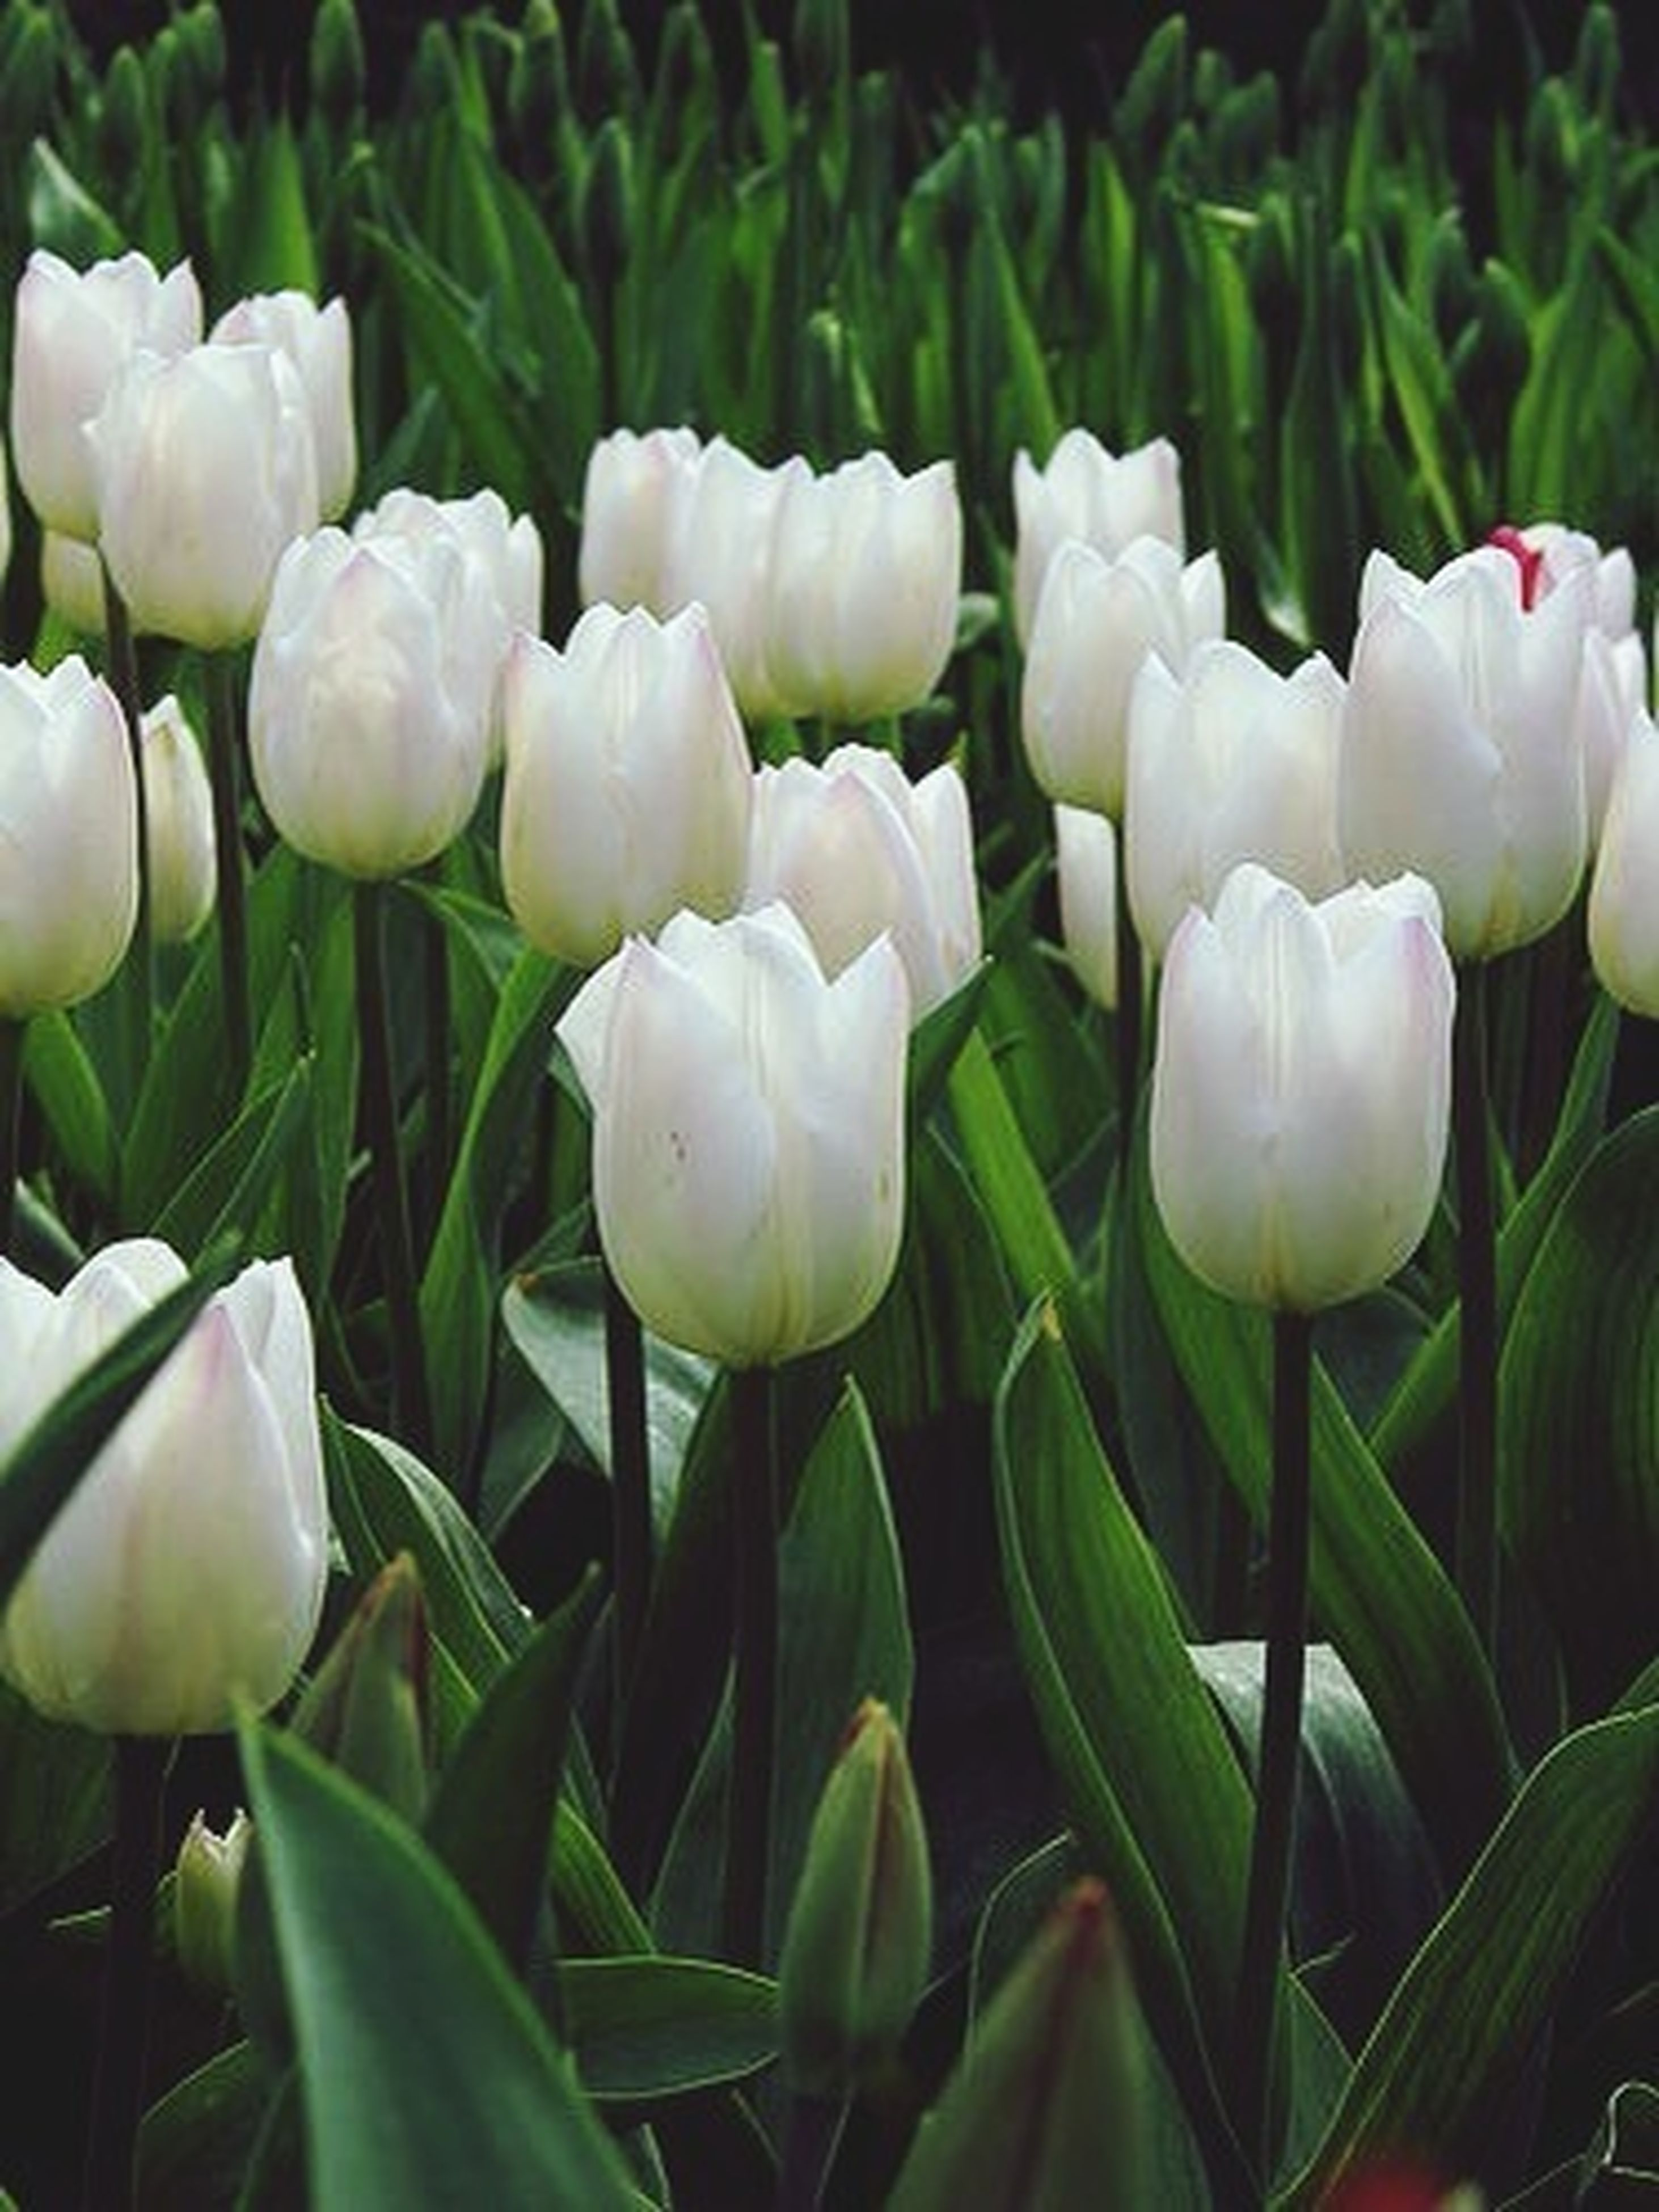 flower, freshness, petal, growth, fragility, tulip, flower head, beauty in nature, white color, plant, nature, blooming, leaf, close-up, green color, field, stem, bud, in bloom, outdoors